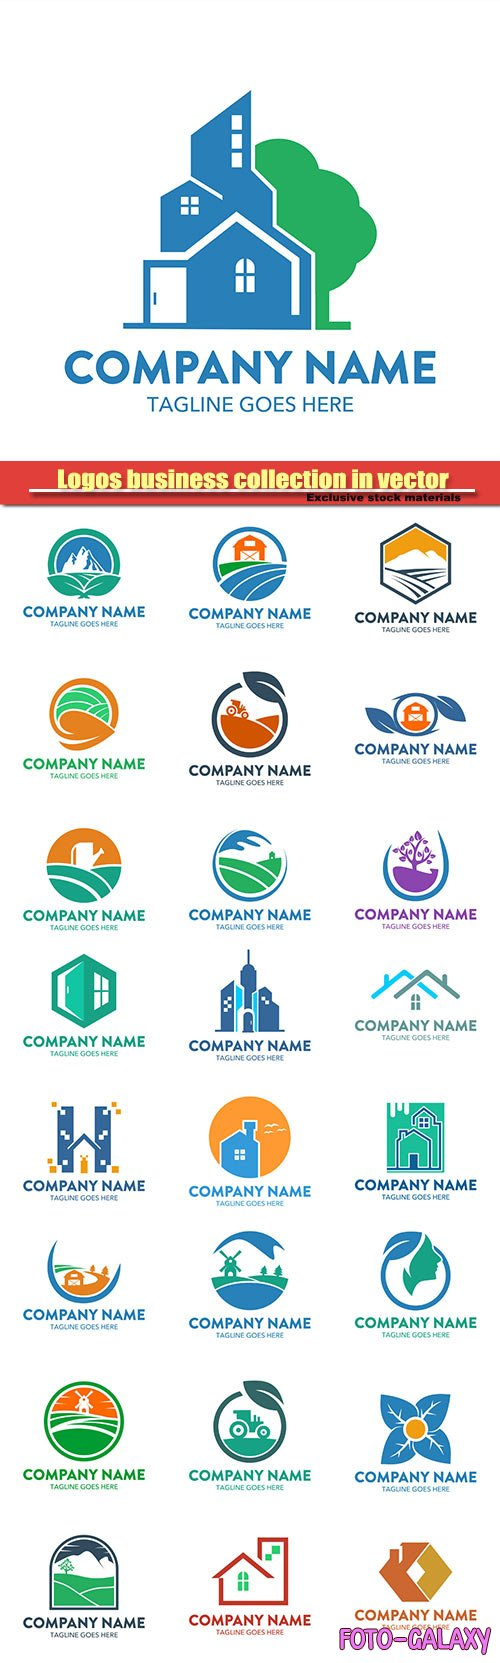 Logos business collection in vector #28